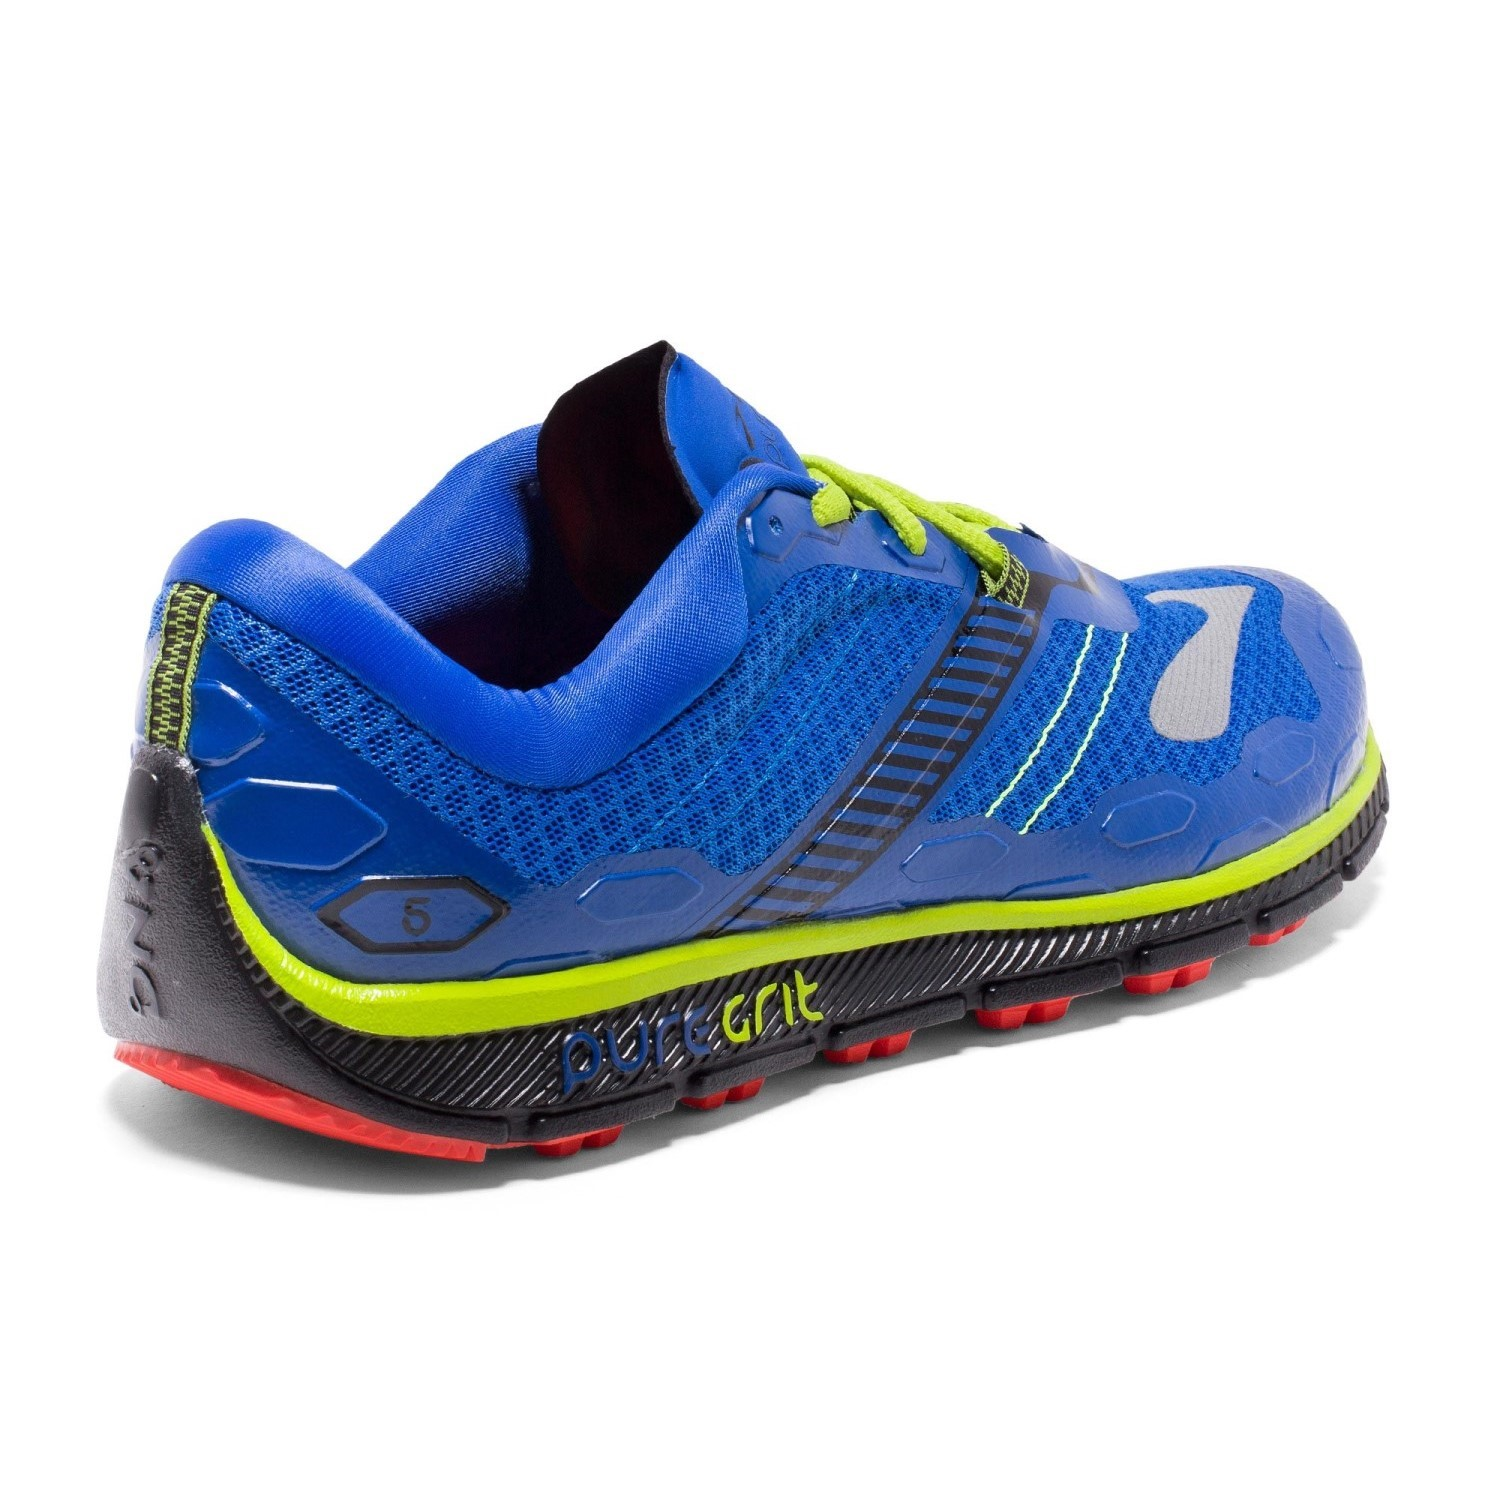 new style 839d1 adfe0 Brooks PureGrit 5 - Mens Trail Running Shoes